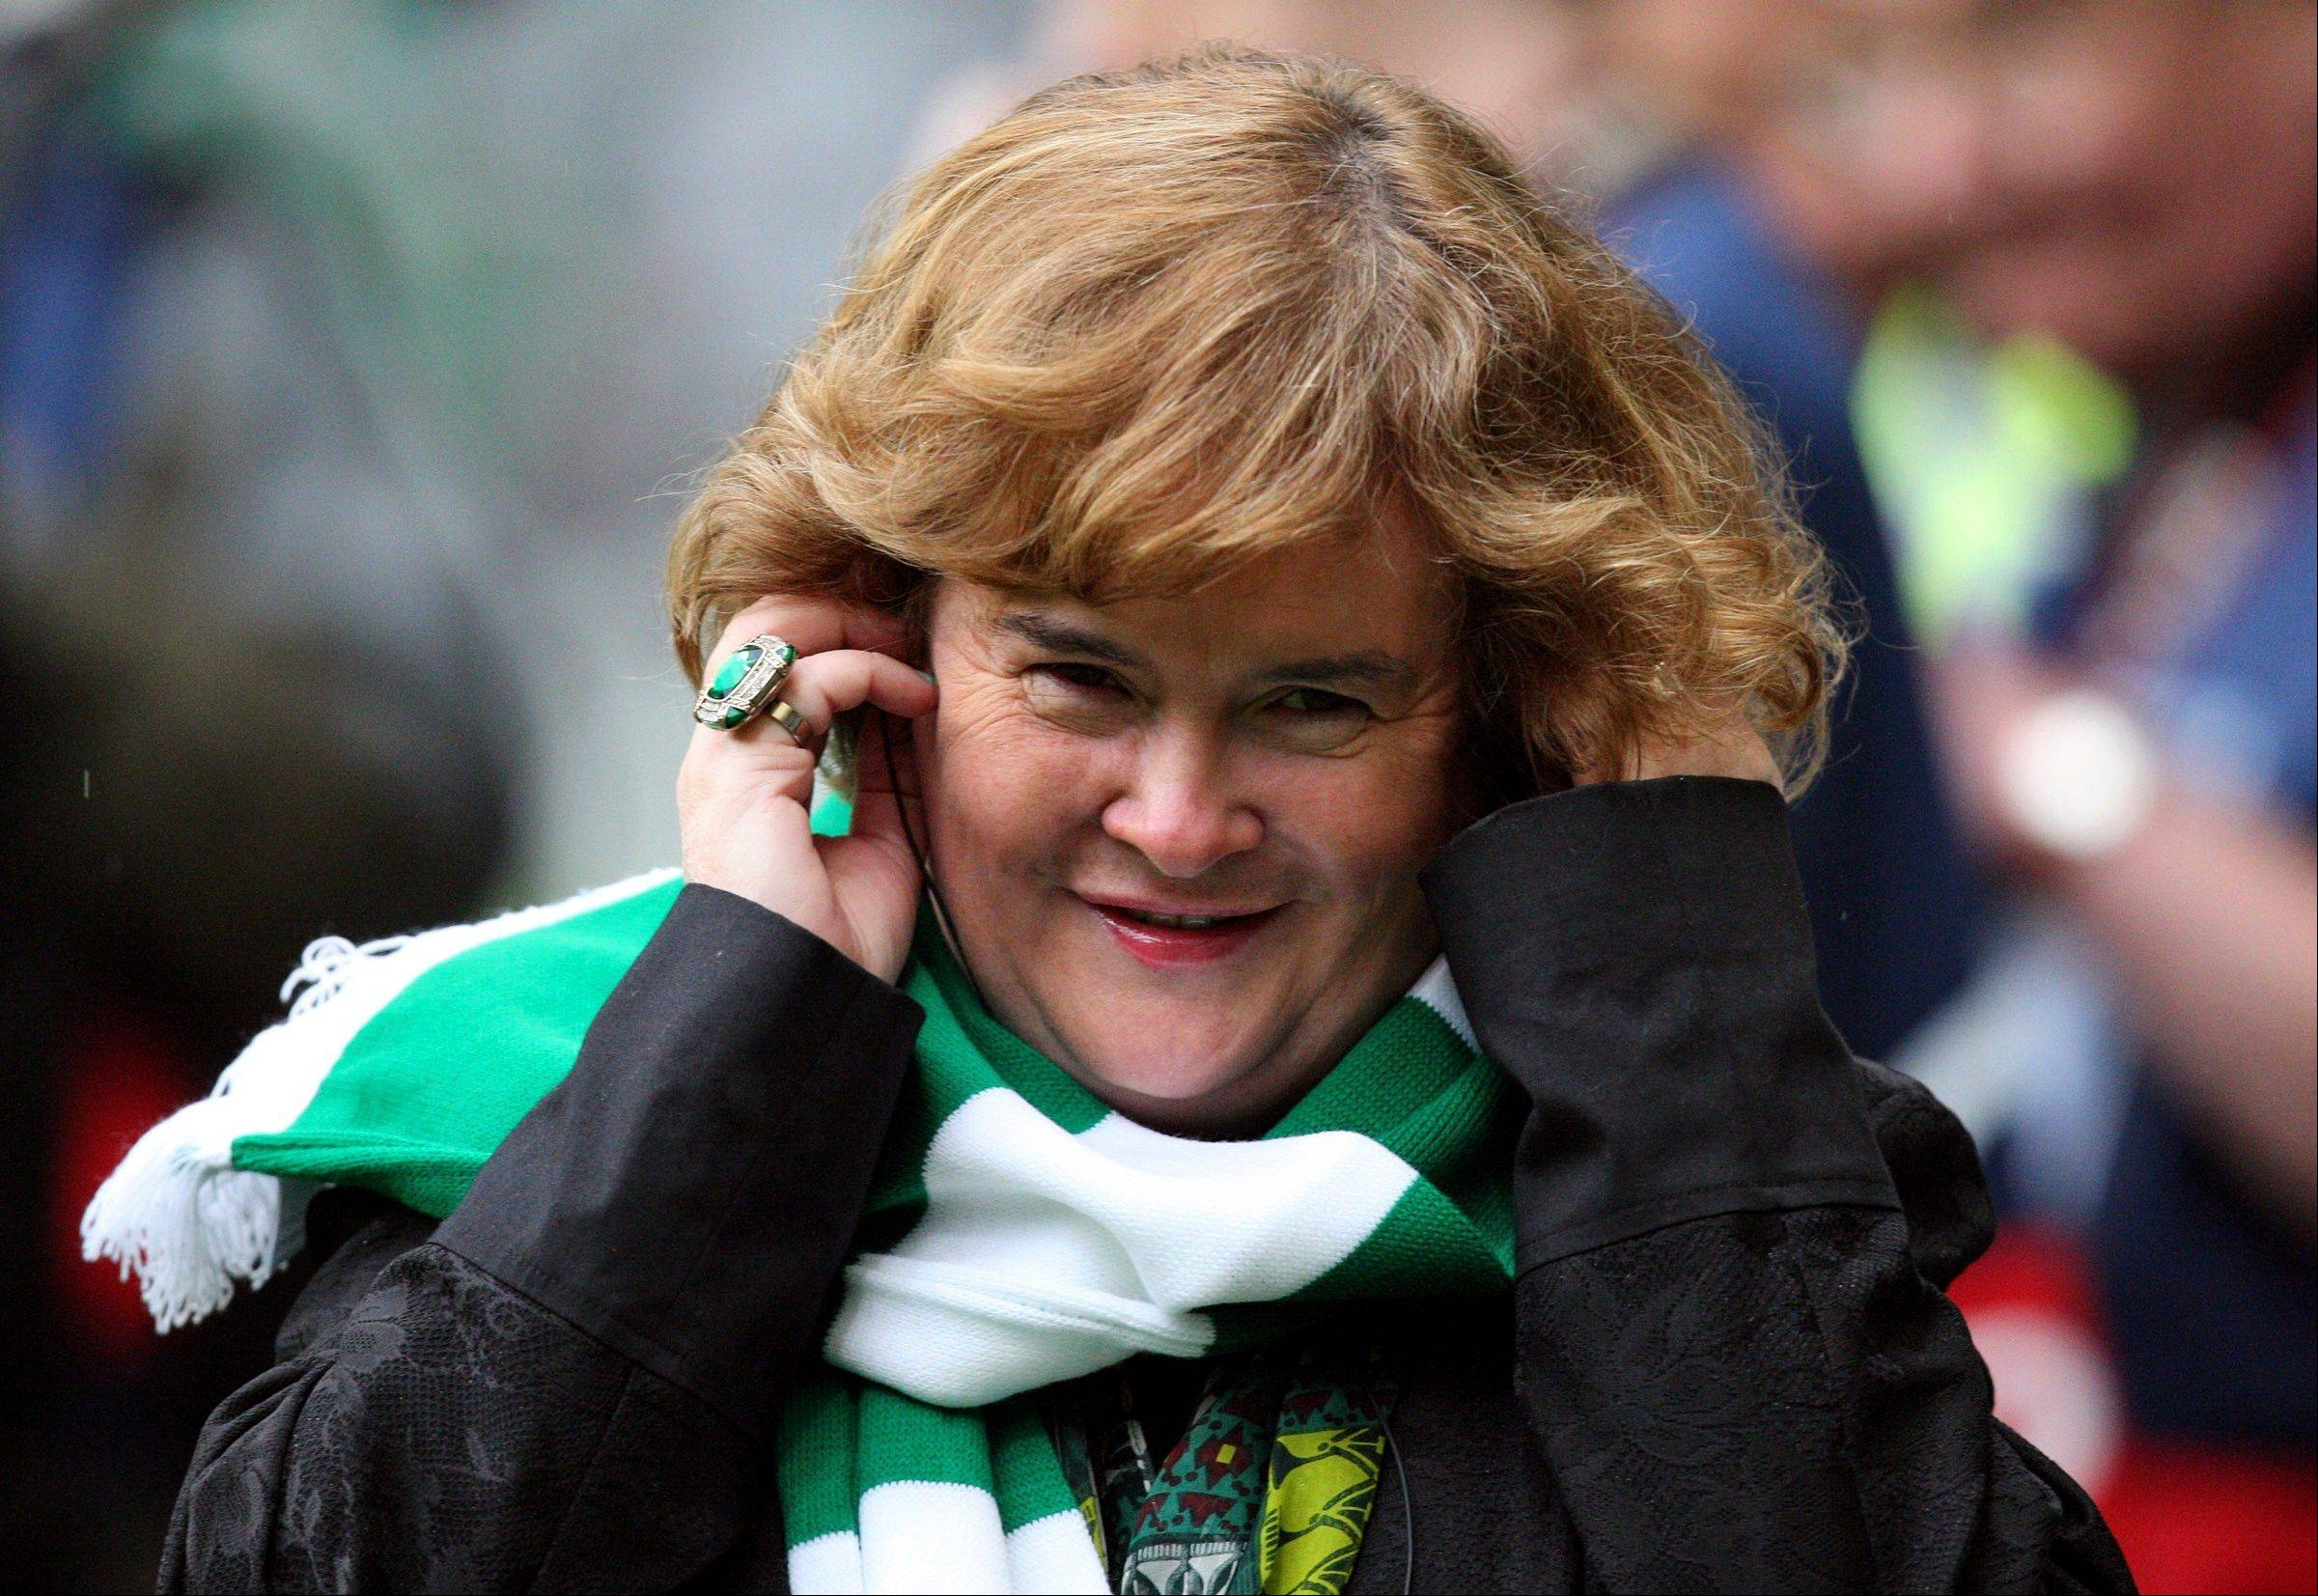 Susan Boyle told the Observer newspaper in an interview published Sunday that she has been diagnosed with Asperger's syndrome, a form of autism, after seeing a specialist a year ago.